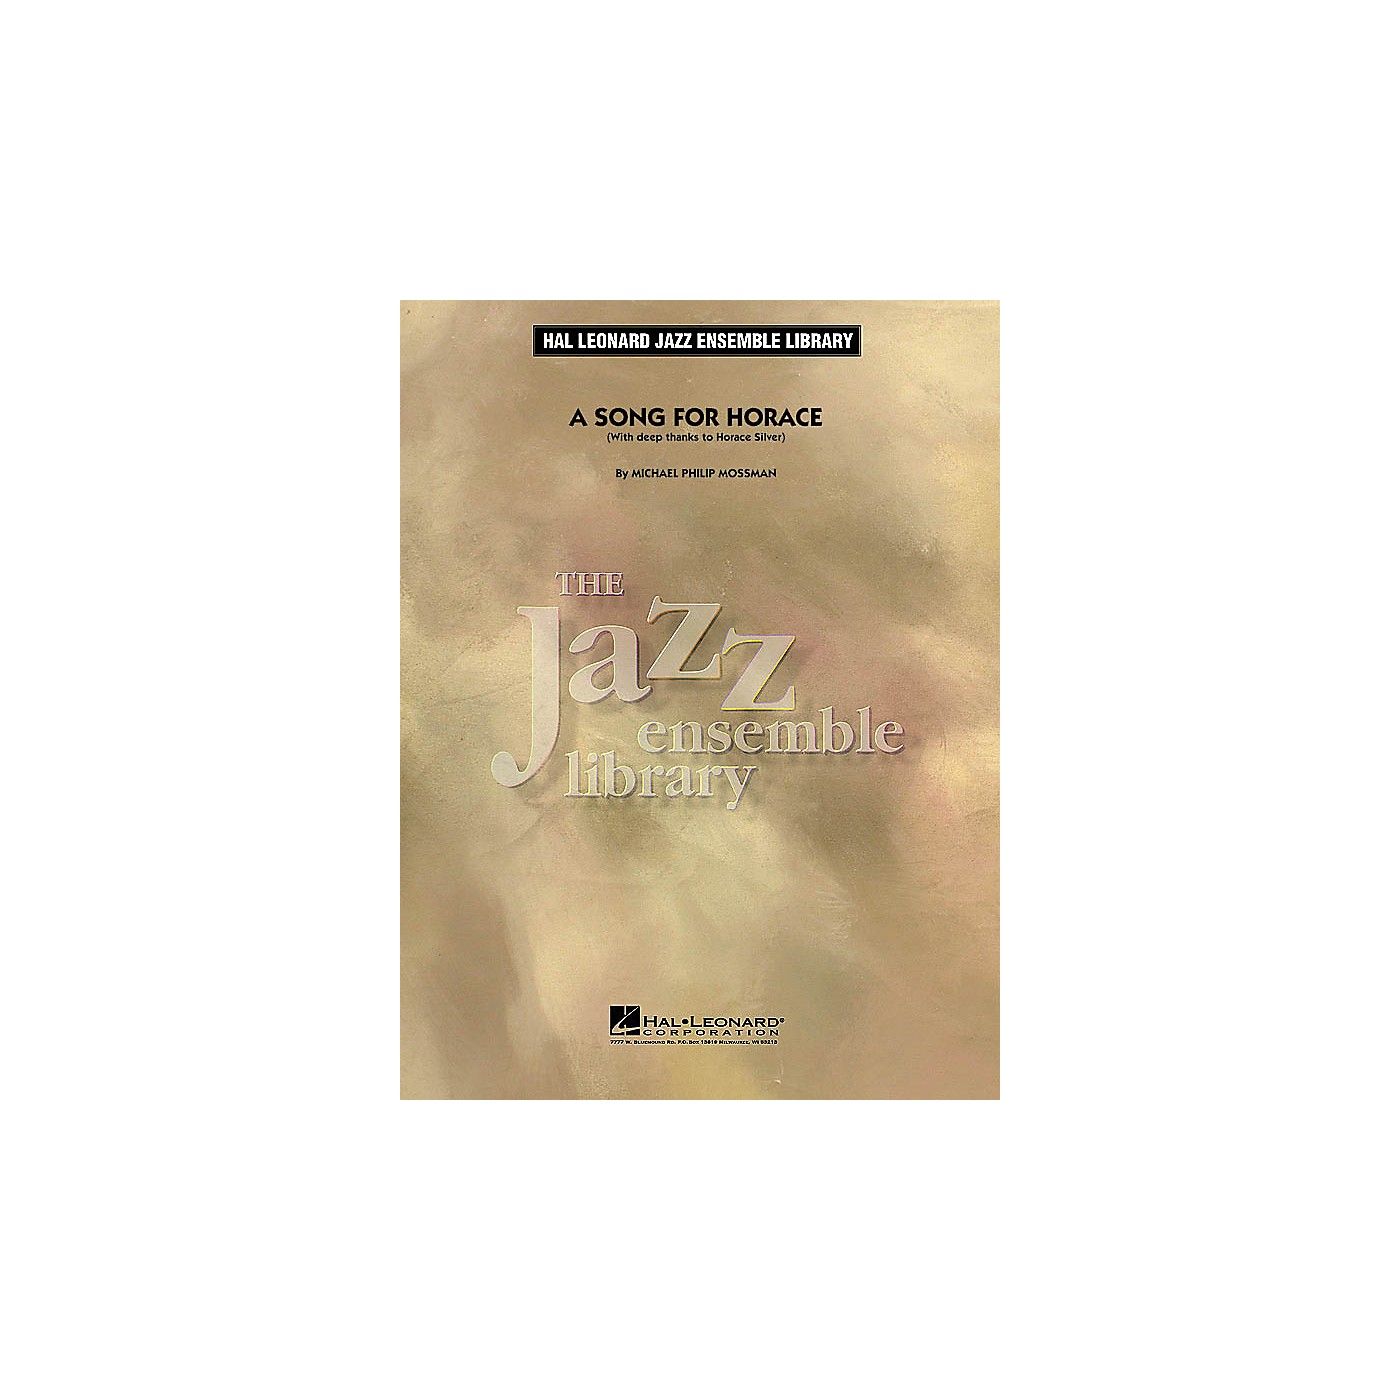 Hal Leonard A Song for Horace (With Deep Thanks to Horace Silver) Jazz Band Level 4 by Michael Philip Mossman thumbnail